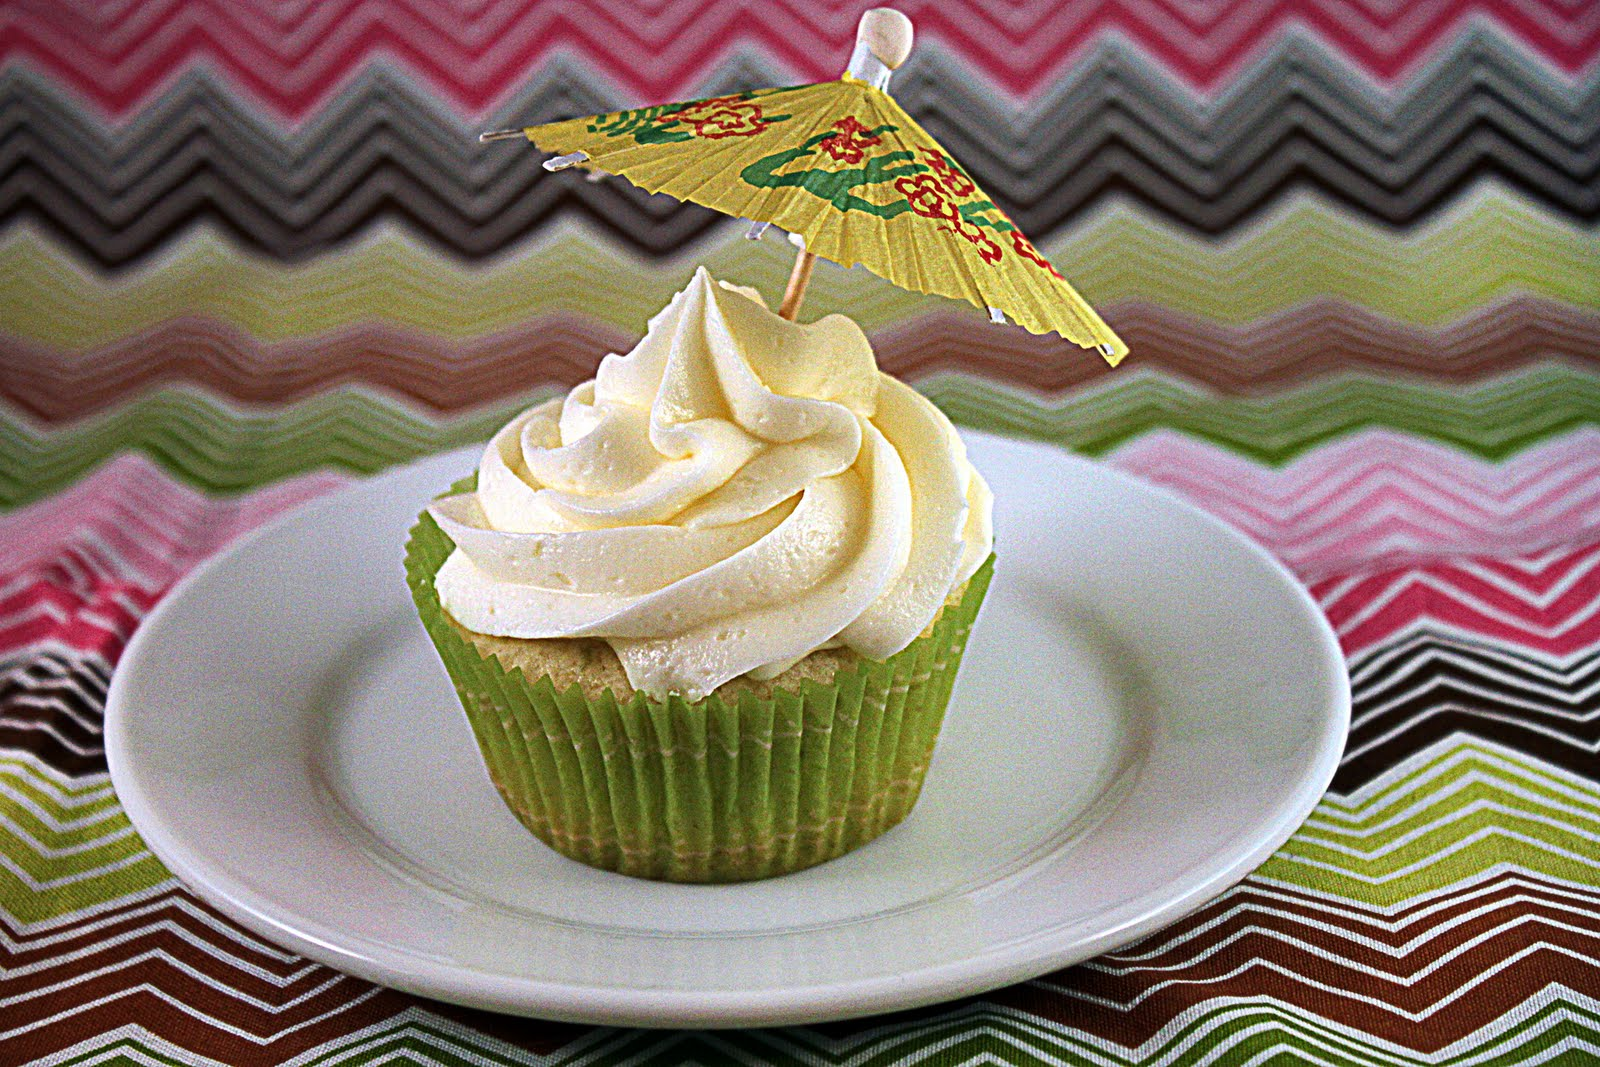 ... margarita cupcakes, oatmeal scotchies and chocolate coconut no-bakes